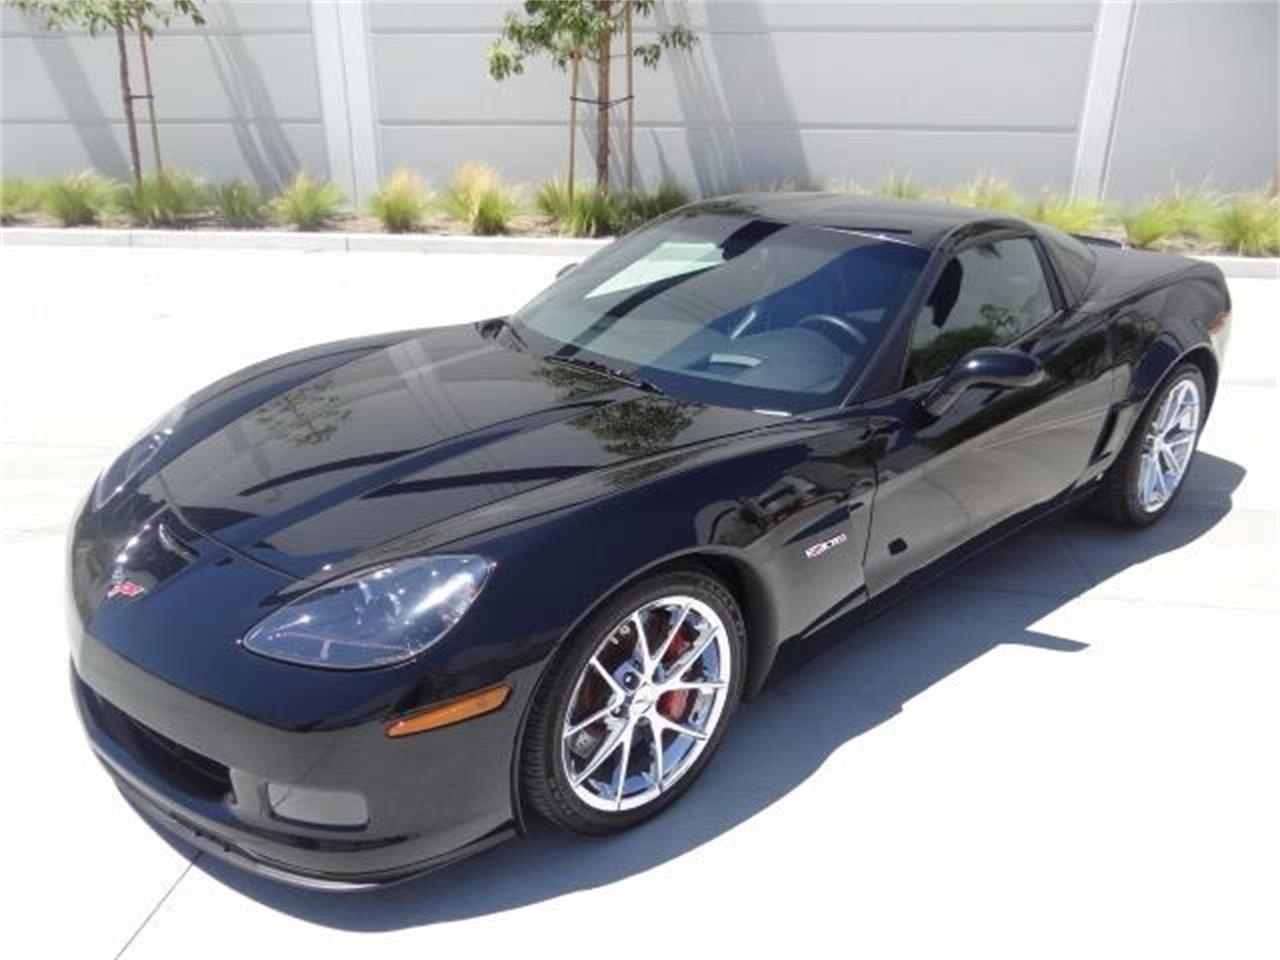 Large Picture of 2009 Corvette Z06 located in Anaheim California - $44,000.00 - LD7C